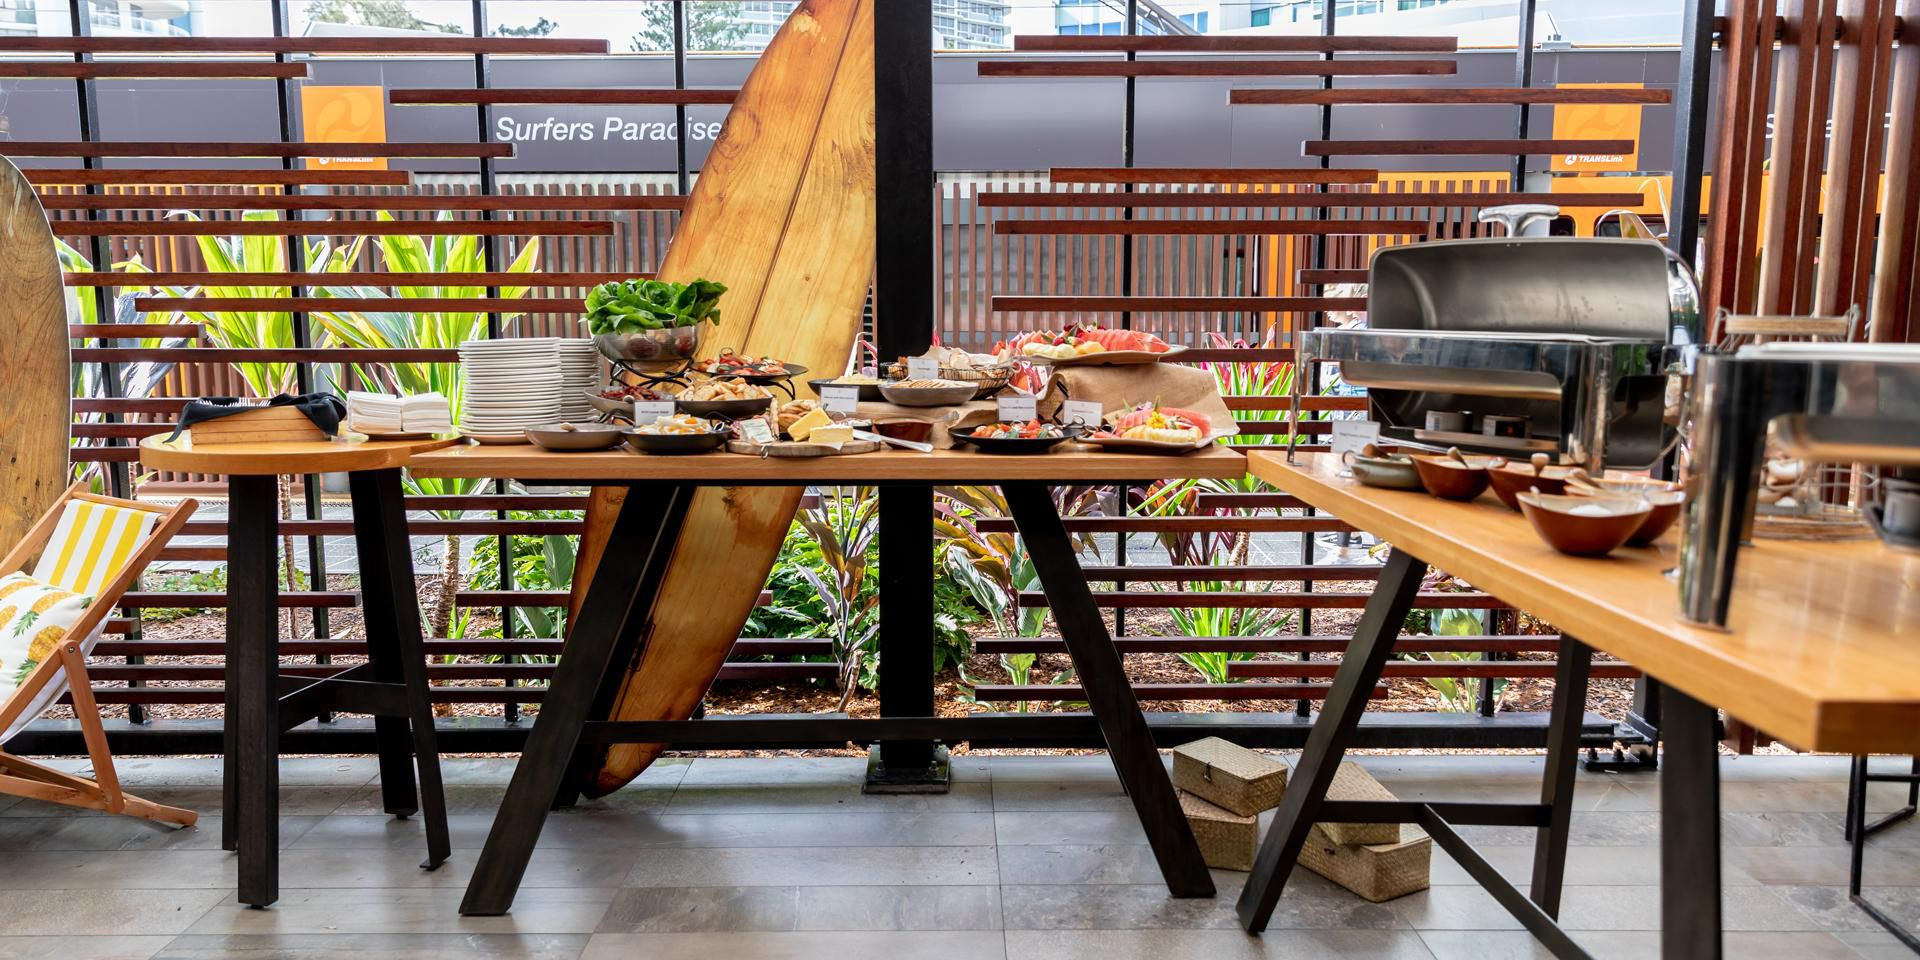 Themed buffet lunch set up in Social House cabana